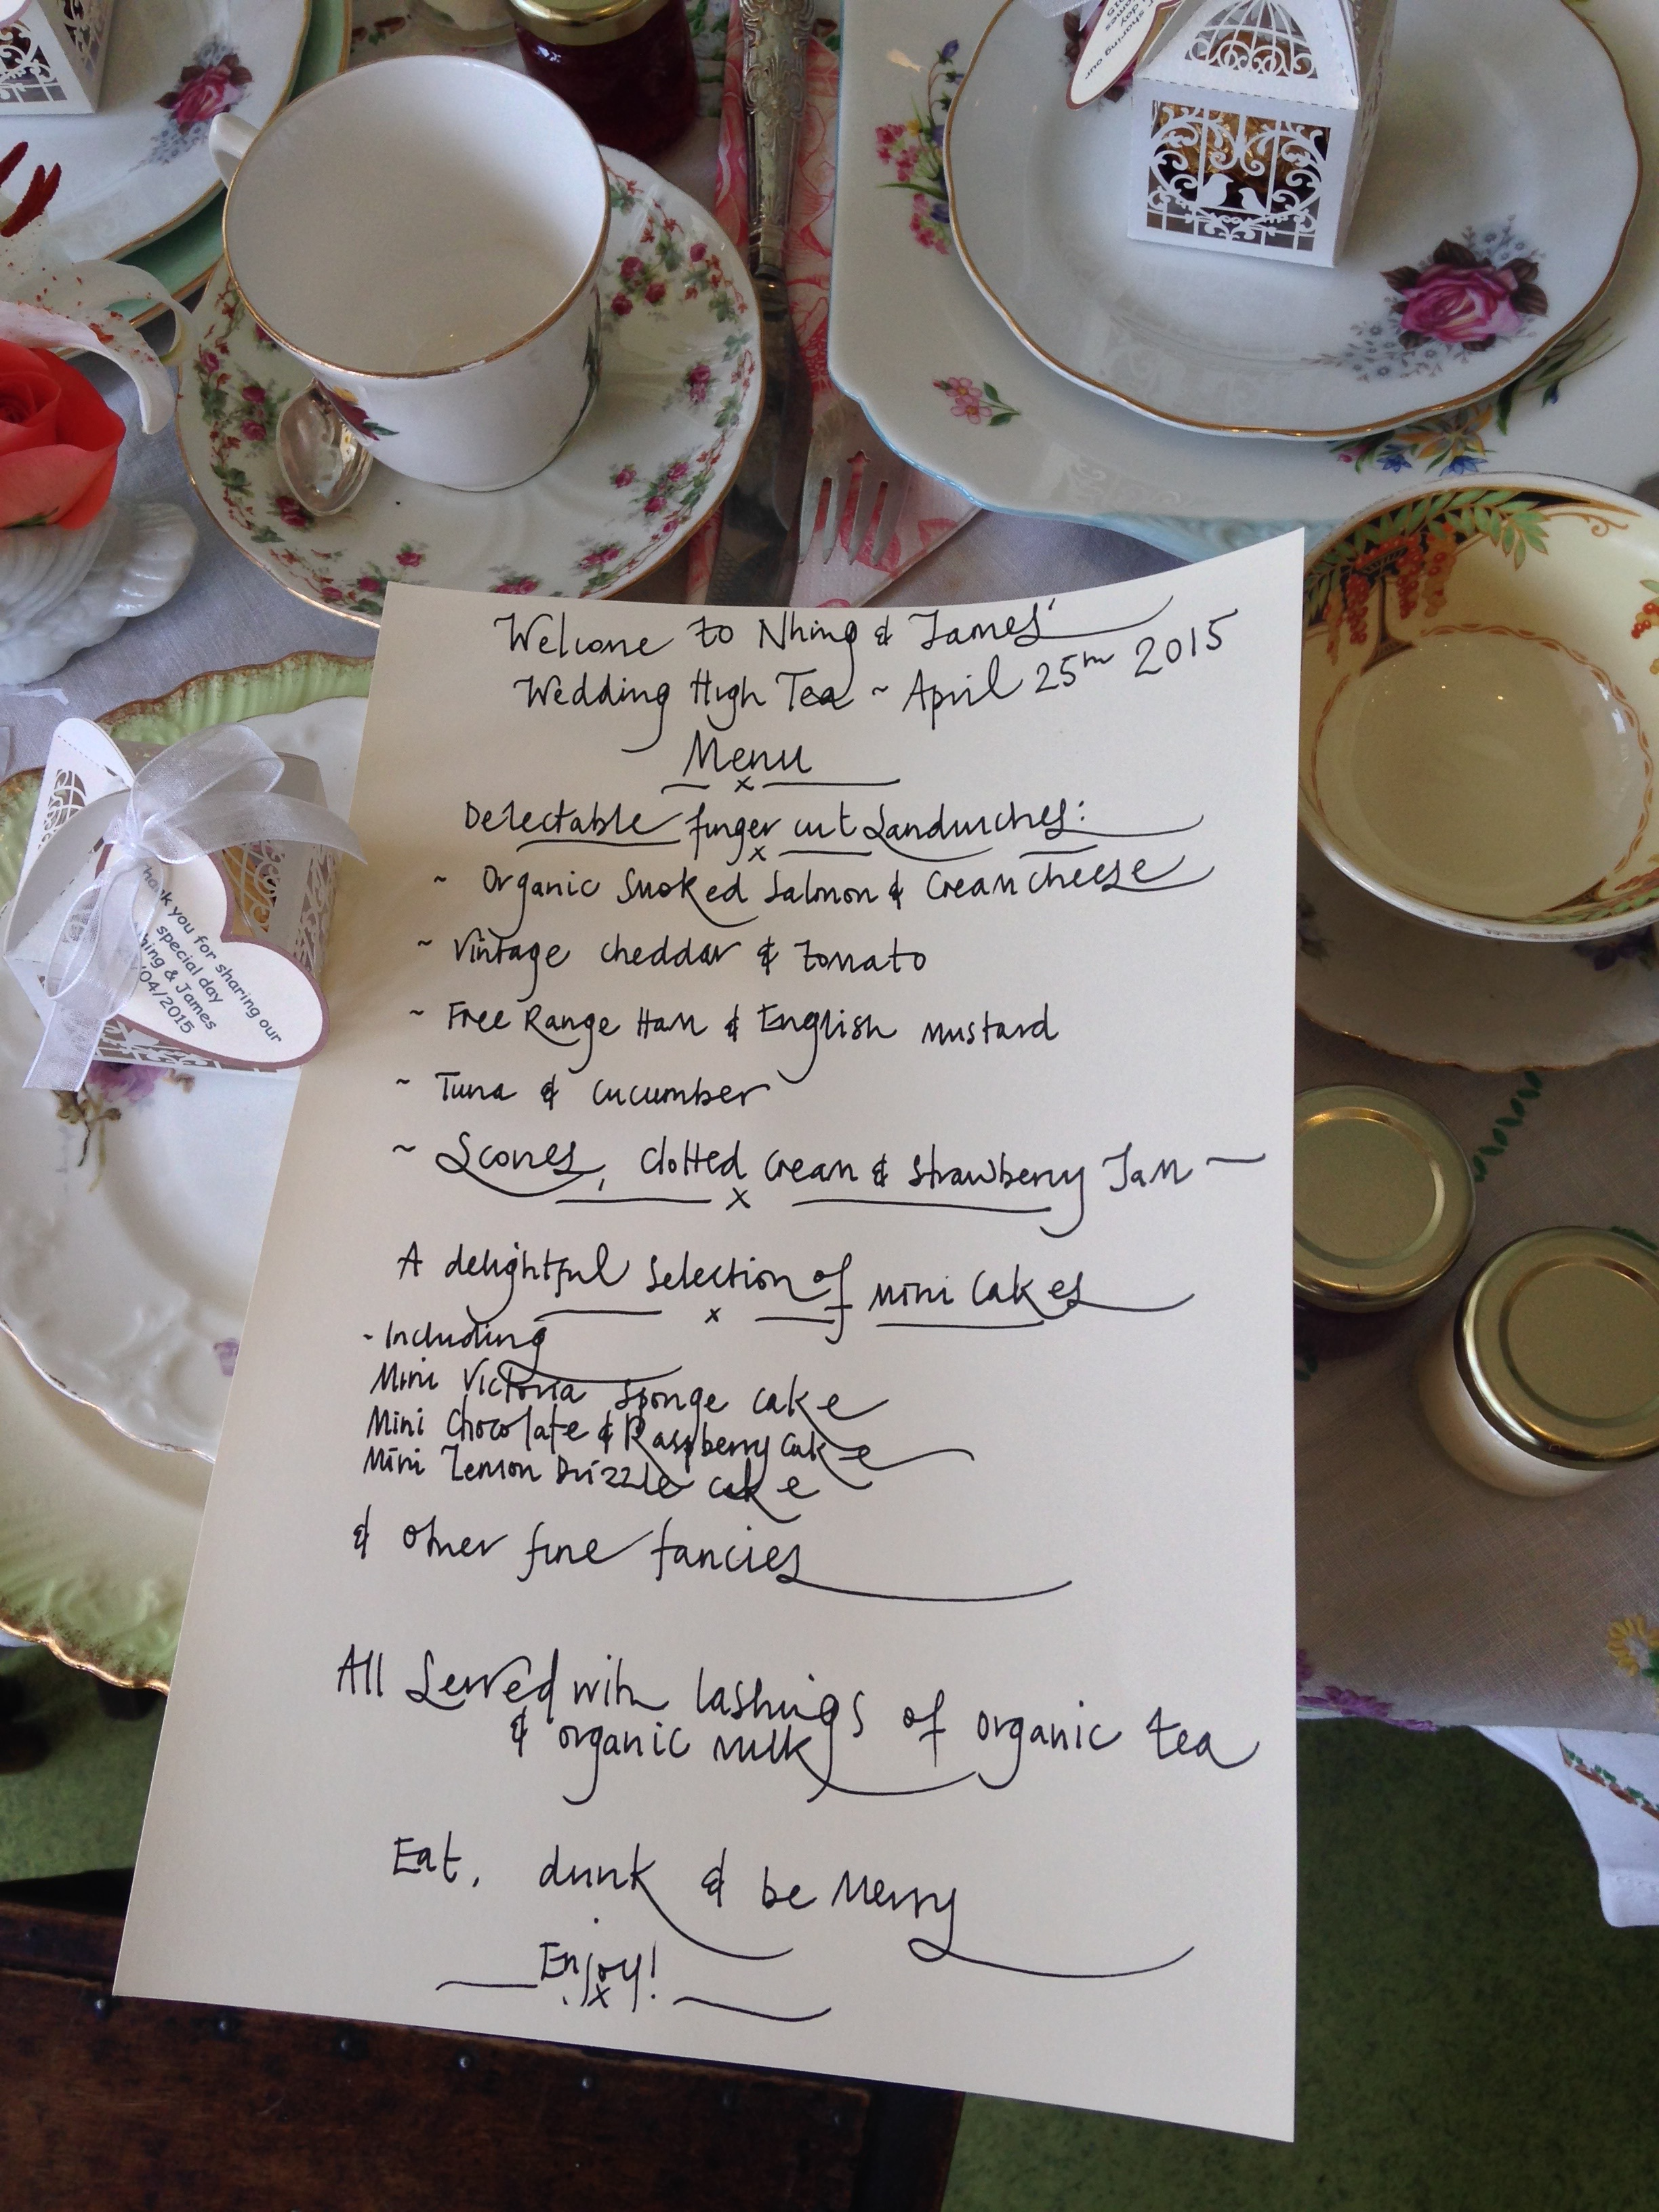 Nhing and James's High Tea Menu.